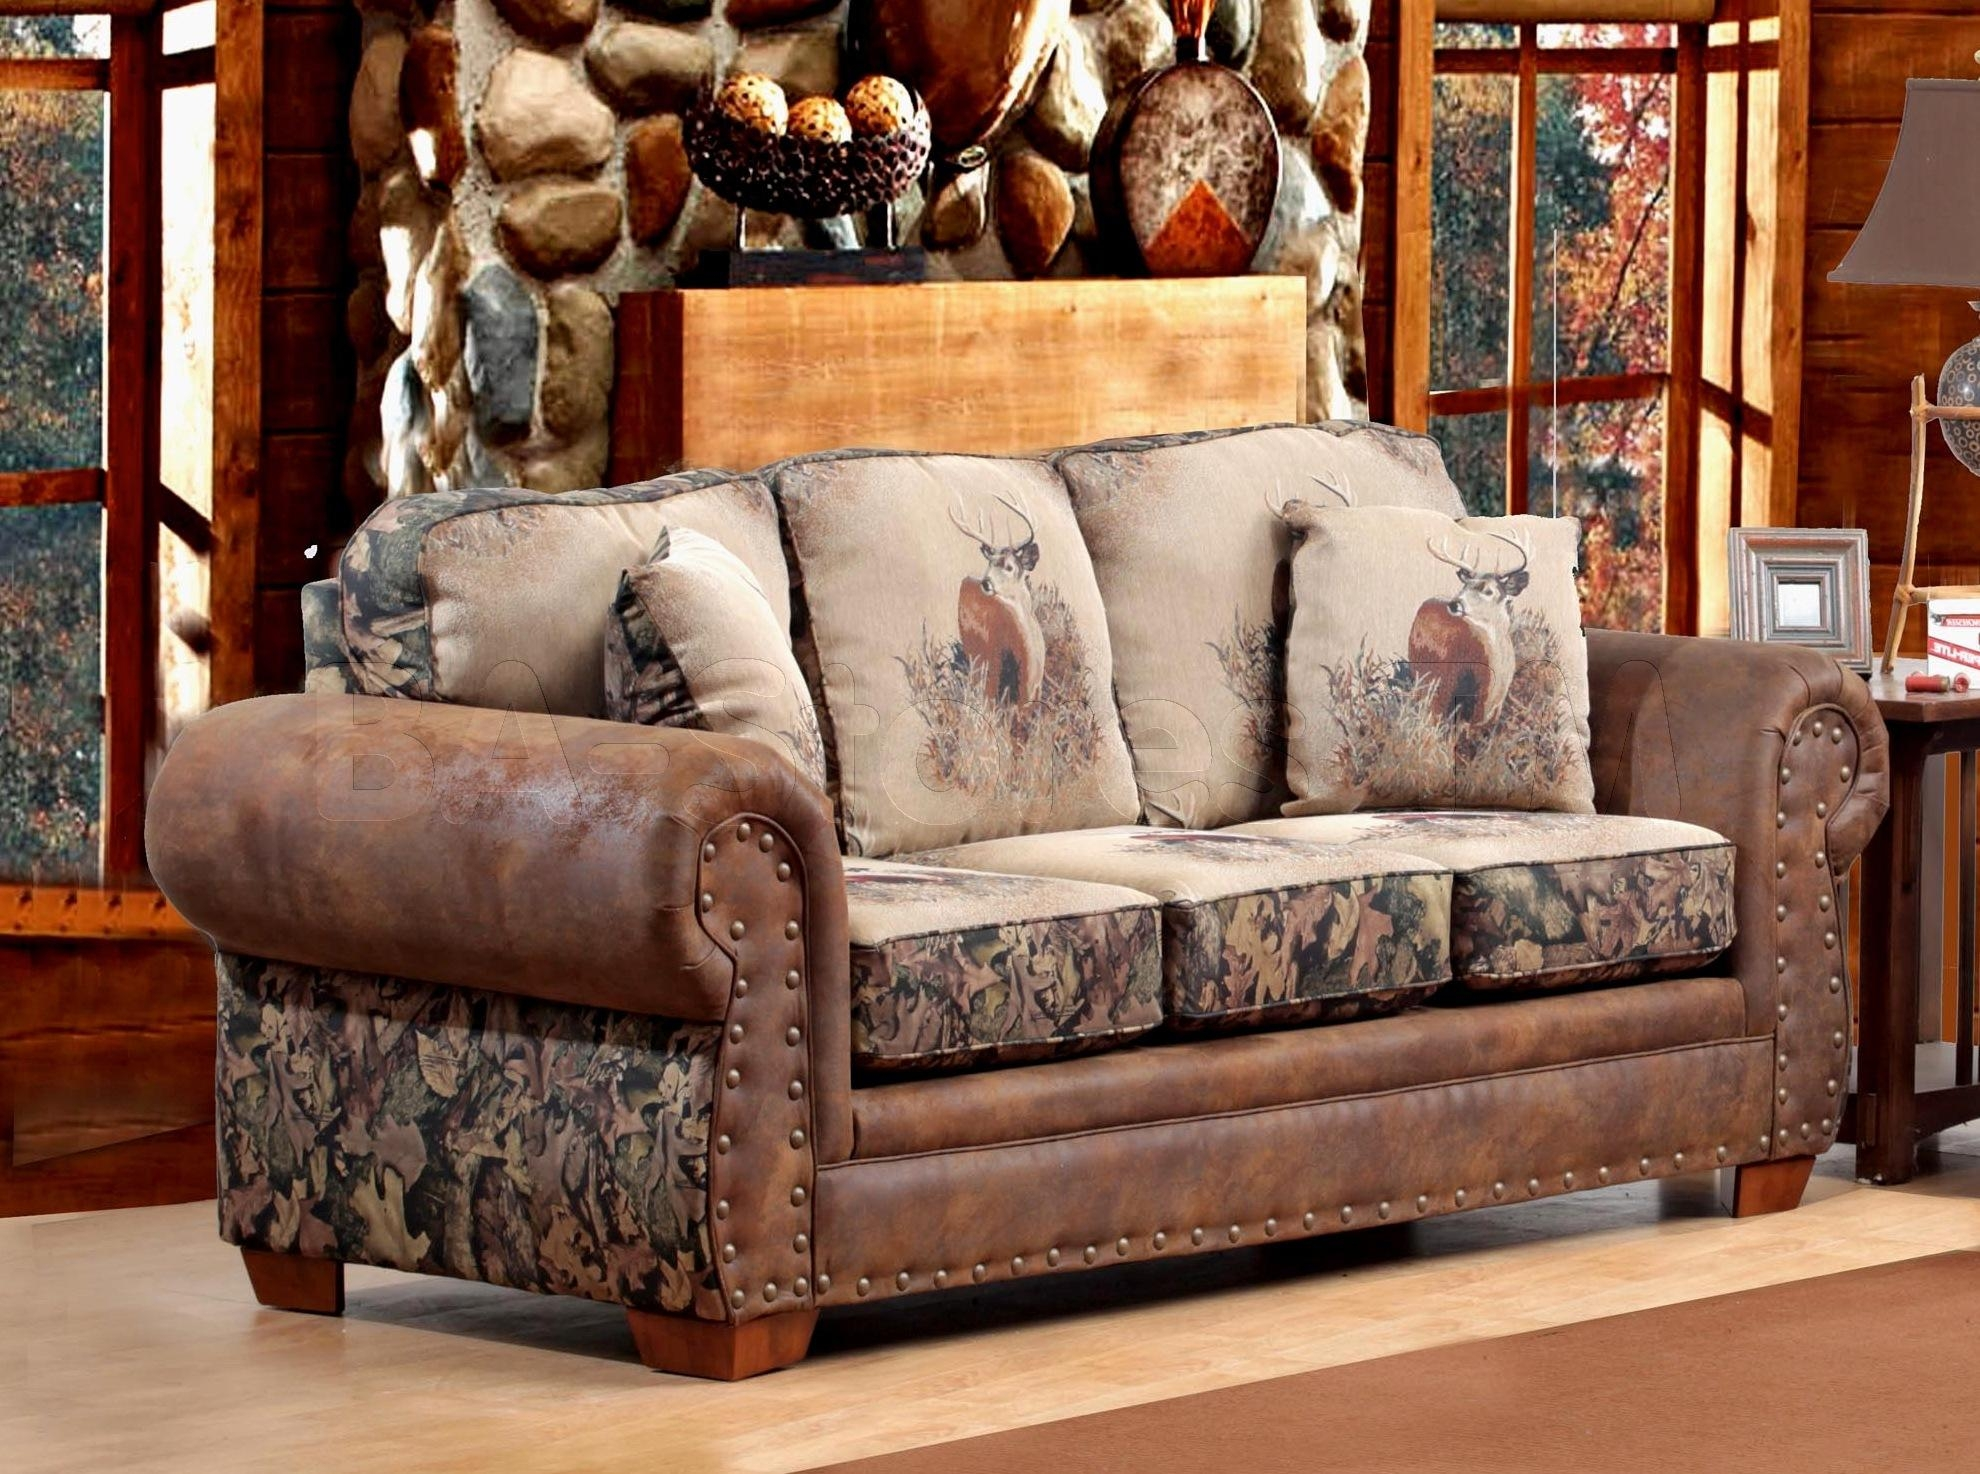 20 Ideas Of Camouflage Sofas Sofa Ideas